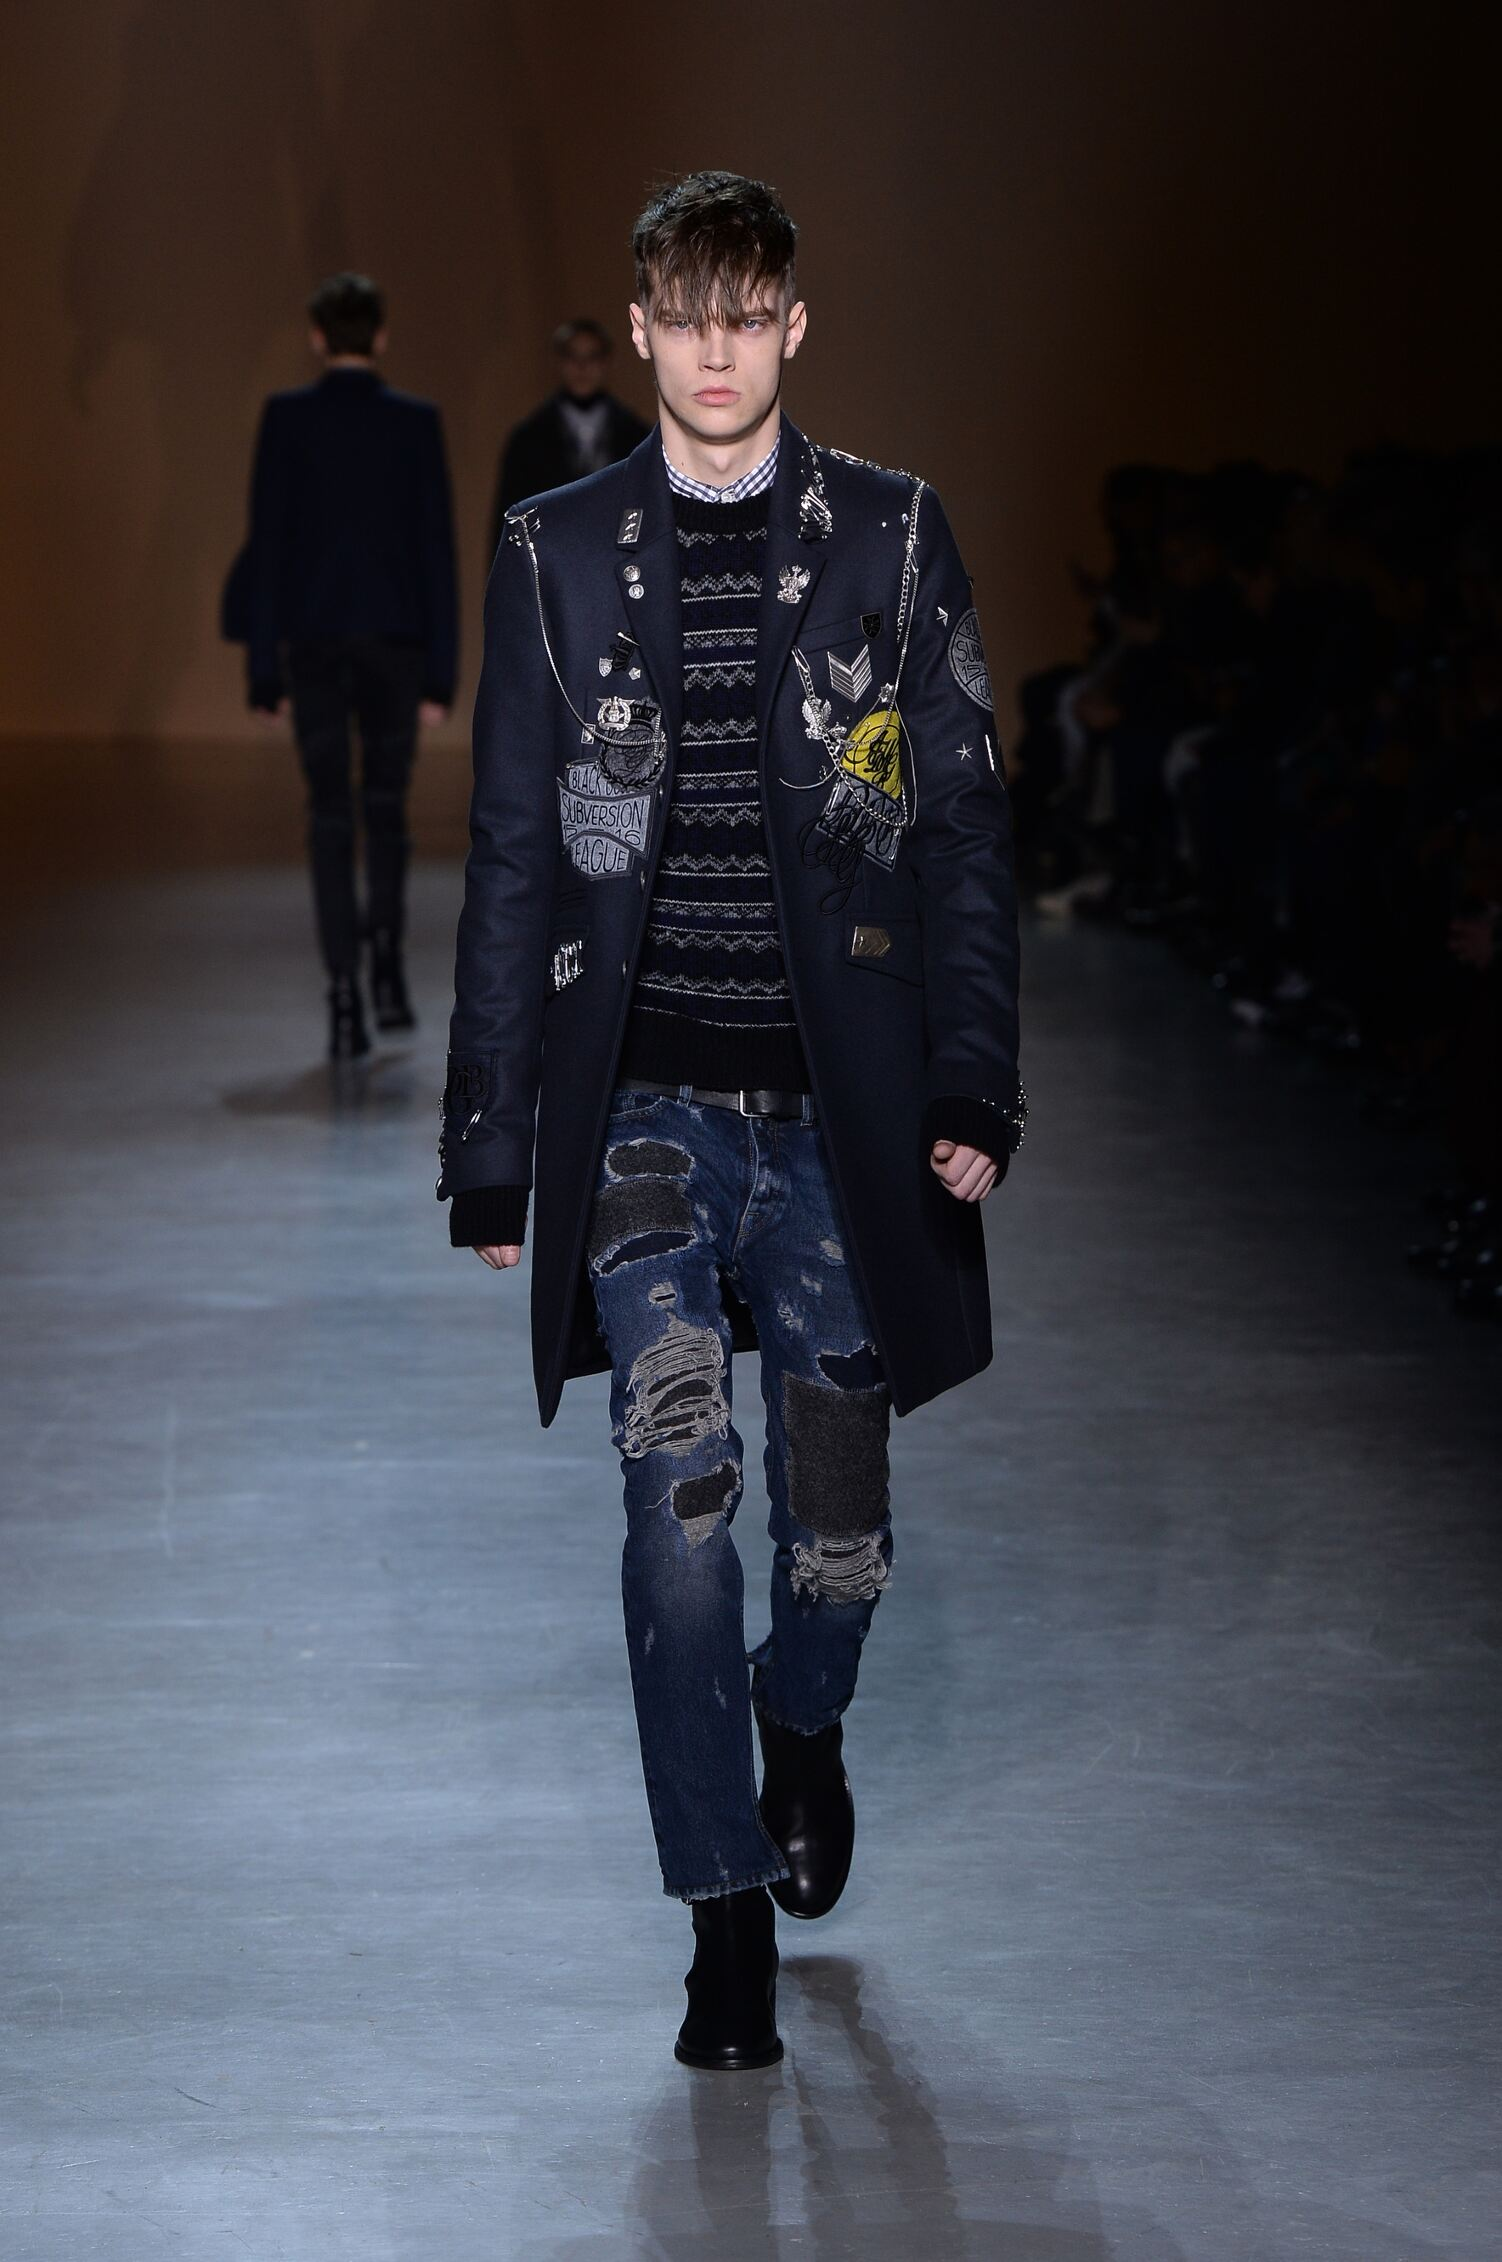 Fall Winter 2015 16 Fashion Men's Collection Diesel Black Gold